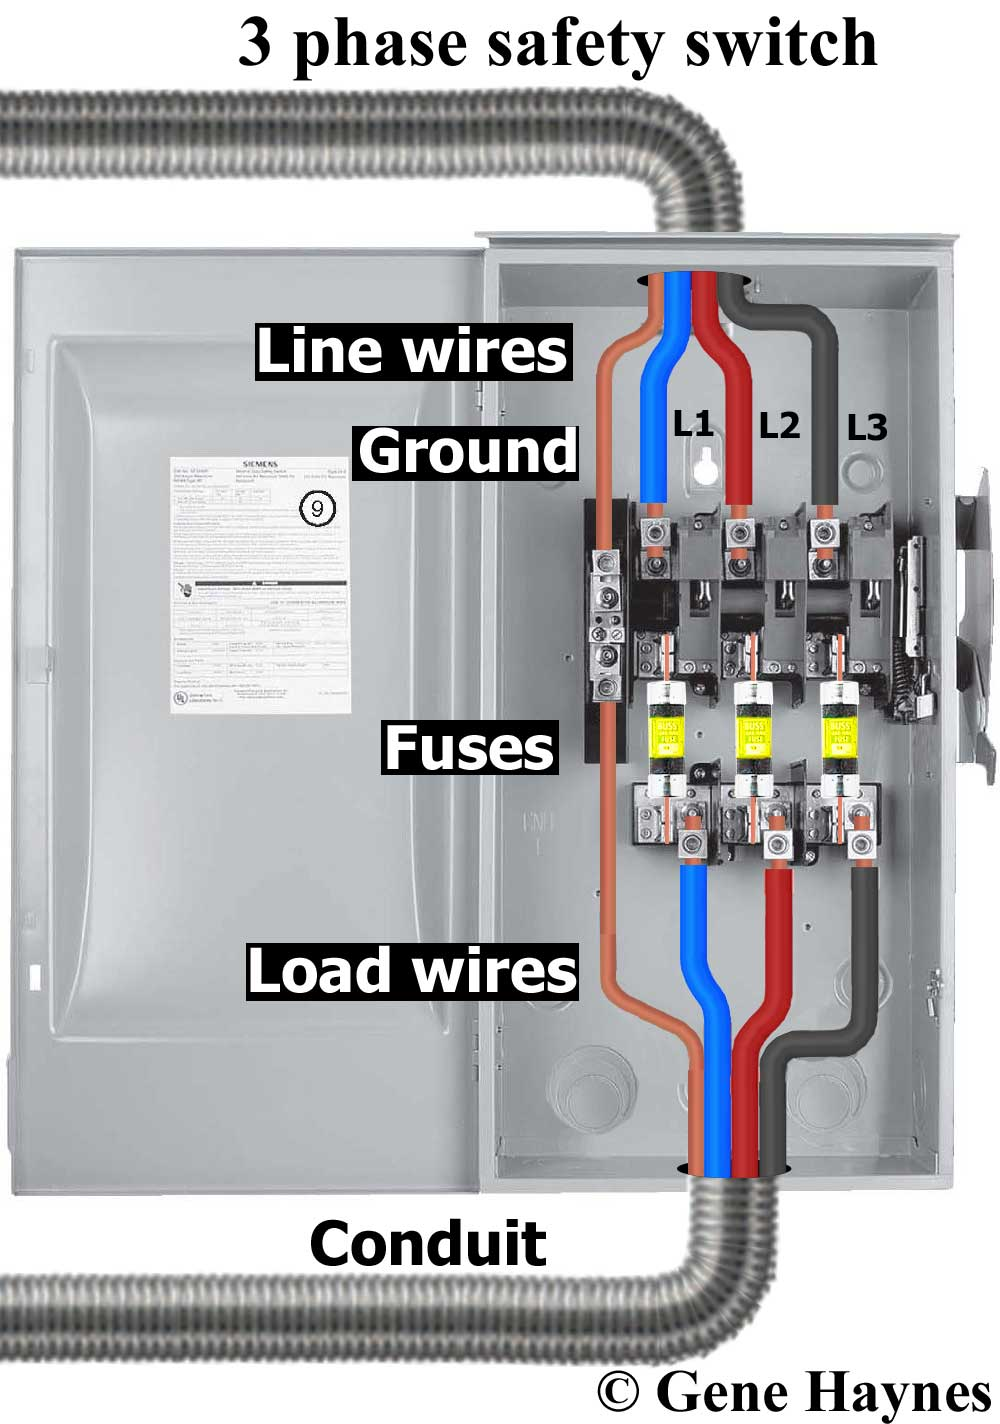 Fusable safety fuse how to wire safety switch double throw safety switch wiring diagram at n-0.co